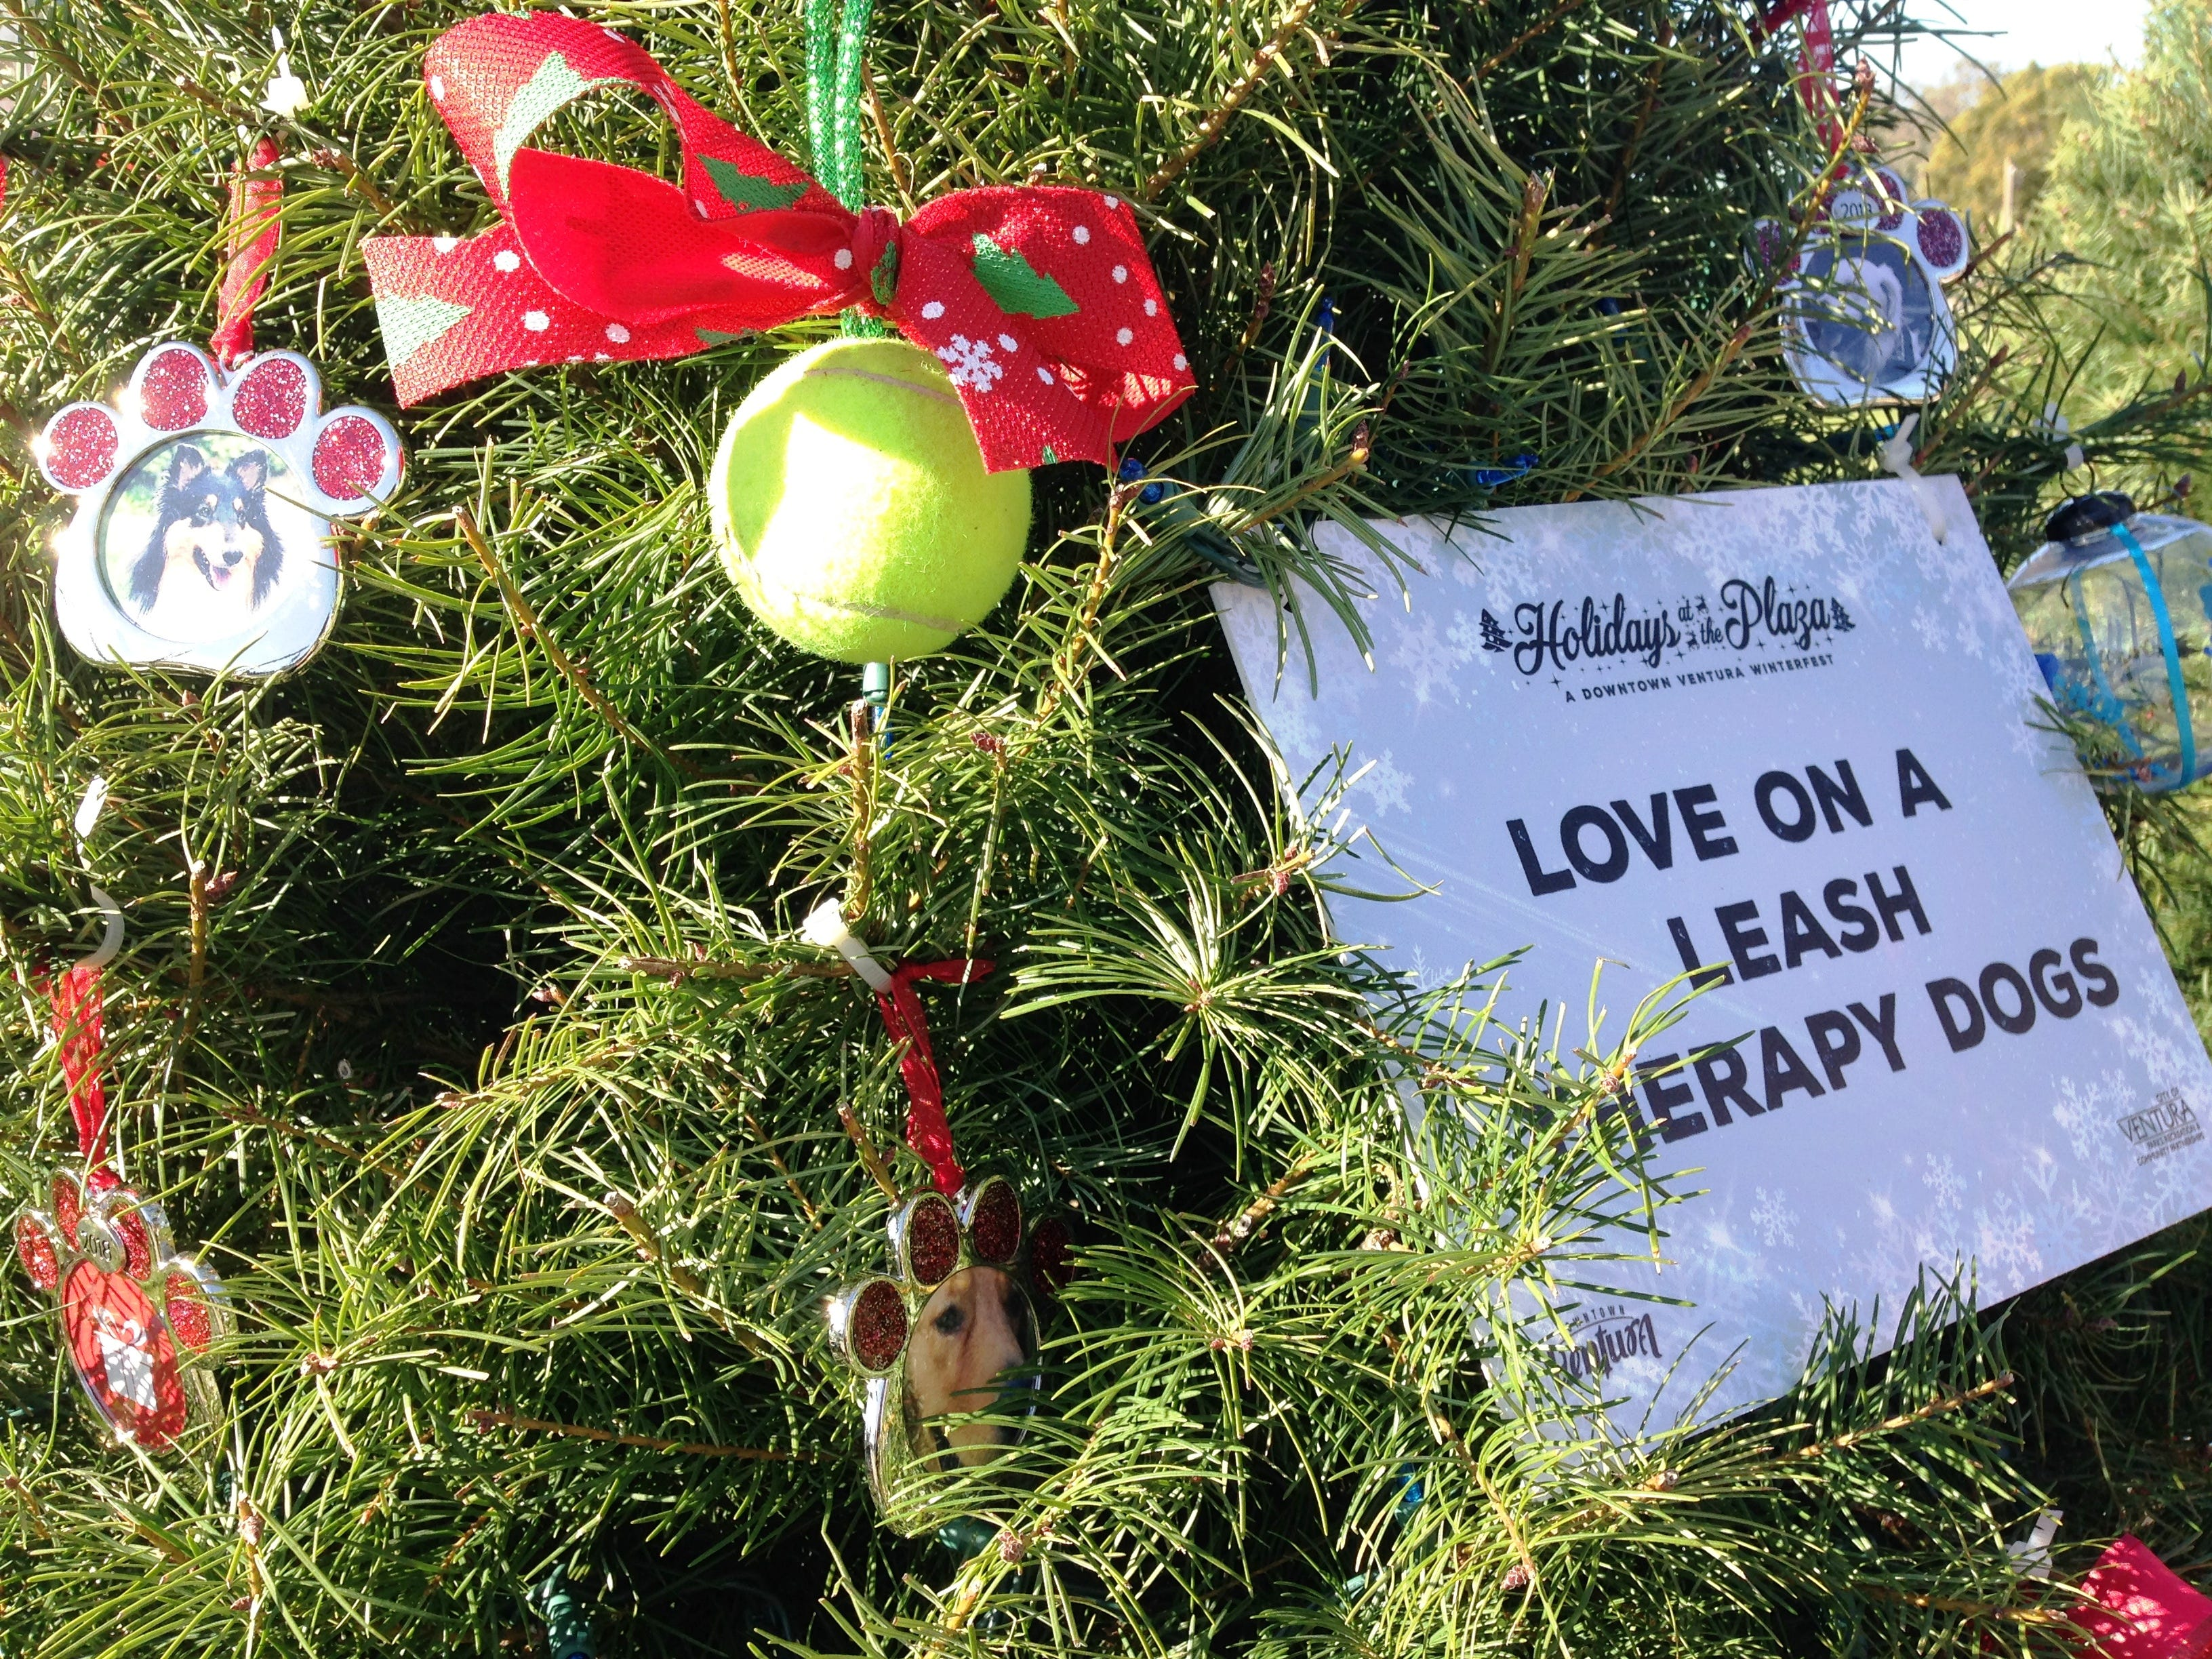 Love on a Leash is among the nonprofit organizations sponsoring a Christmas tree for Holidays at the Plaza, an event at Plaza Park in Ventura running Dec. 7 through Jan. 2. The event showcases more than 100 elaborately decorated trees.